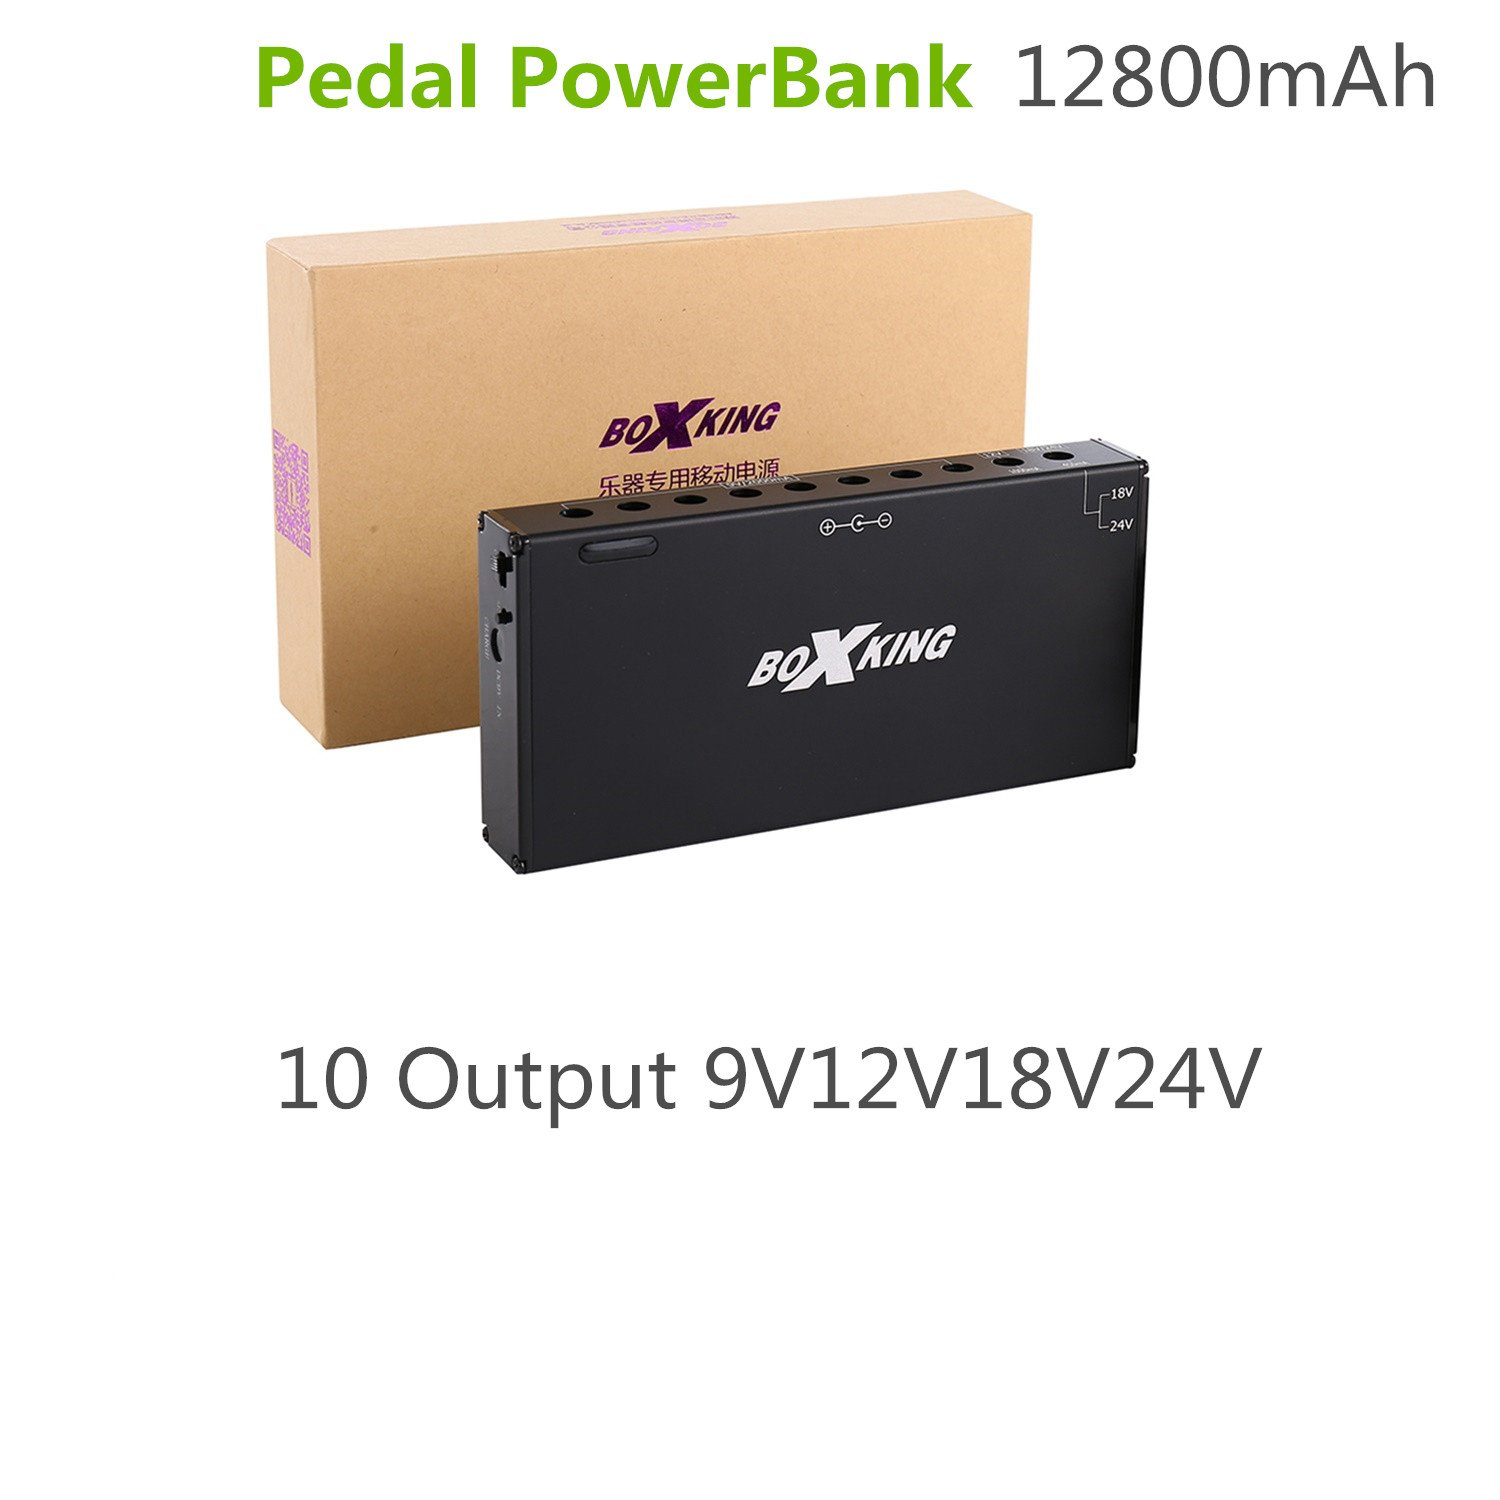 BoxKing BK05 12800mAh PEDAL POWERBANK Rechargeable Portable Pedal Power Supply. Great Solution for Pedalboards and More. by Boxking